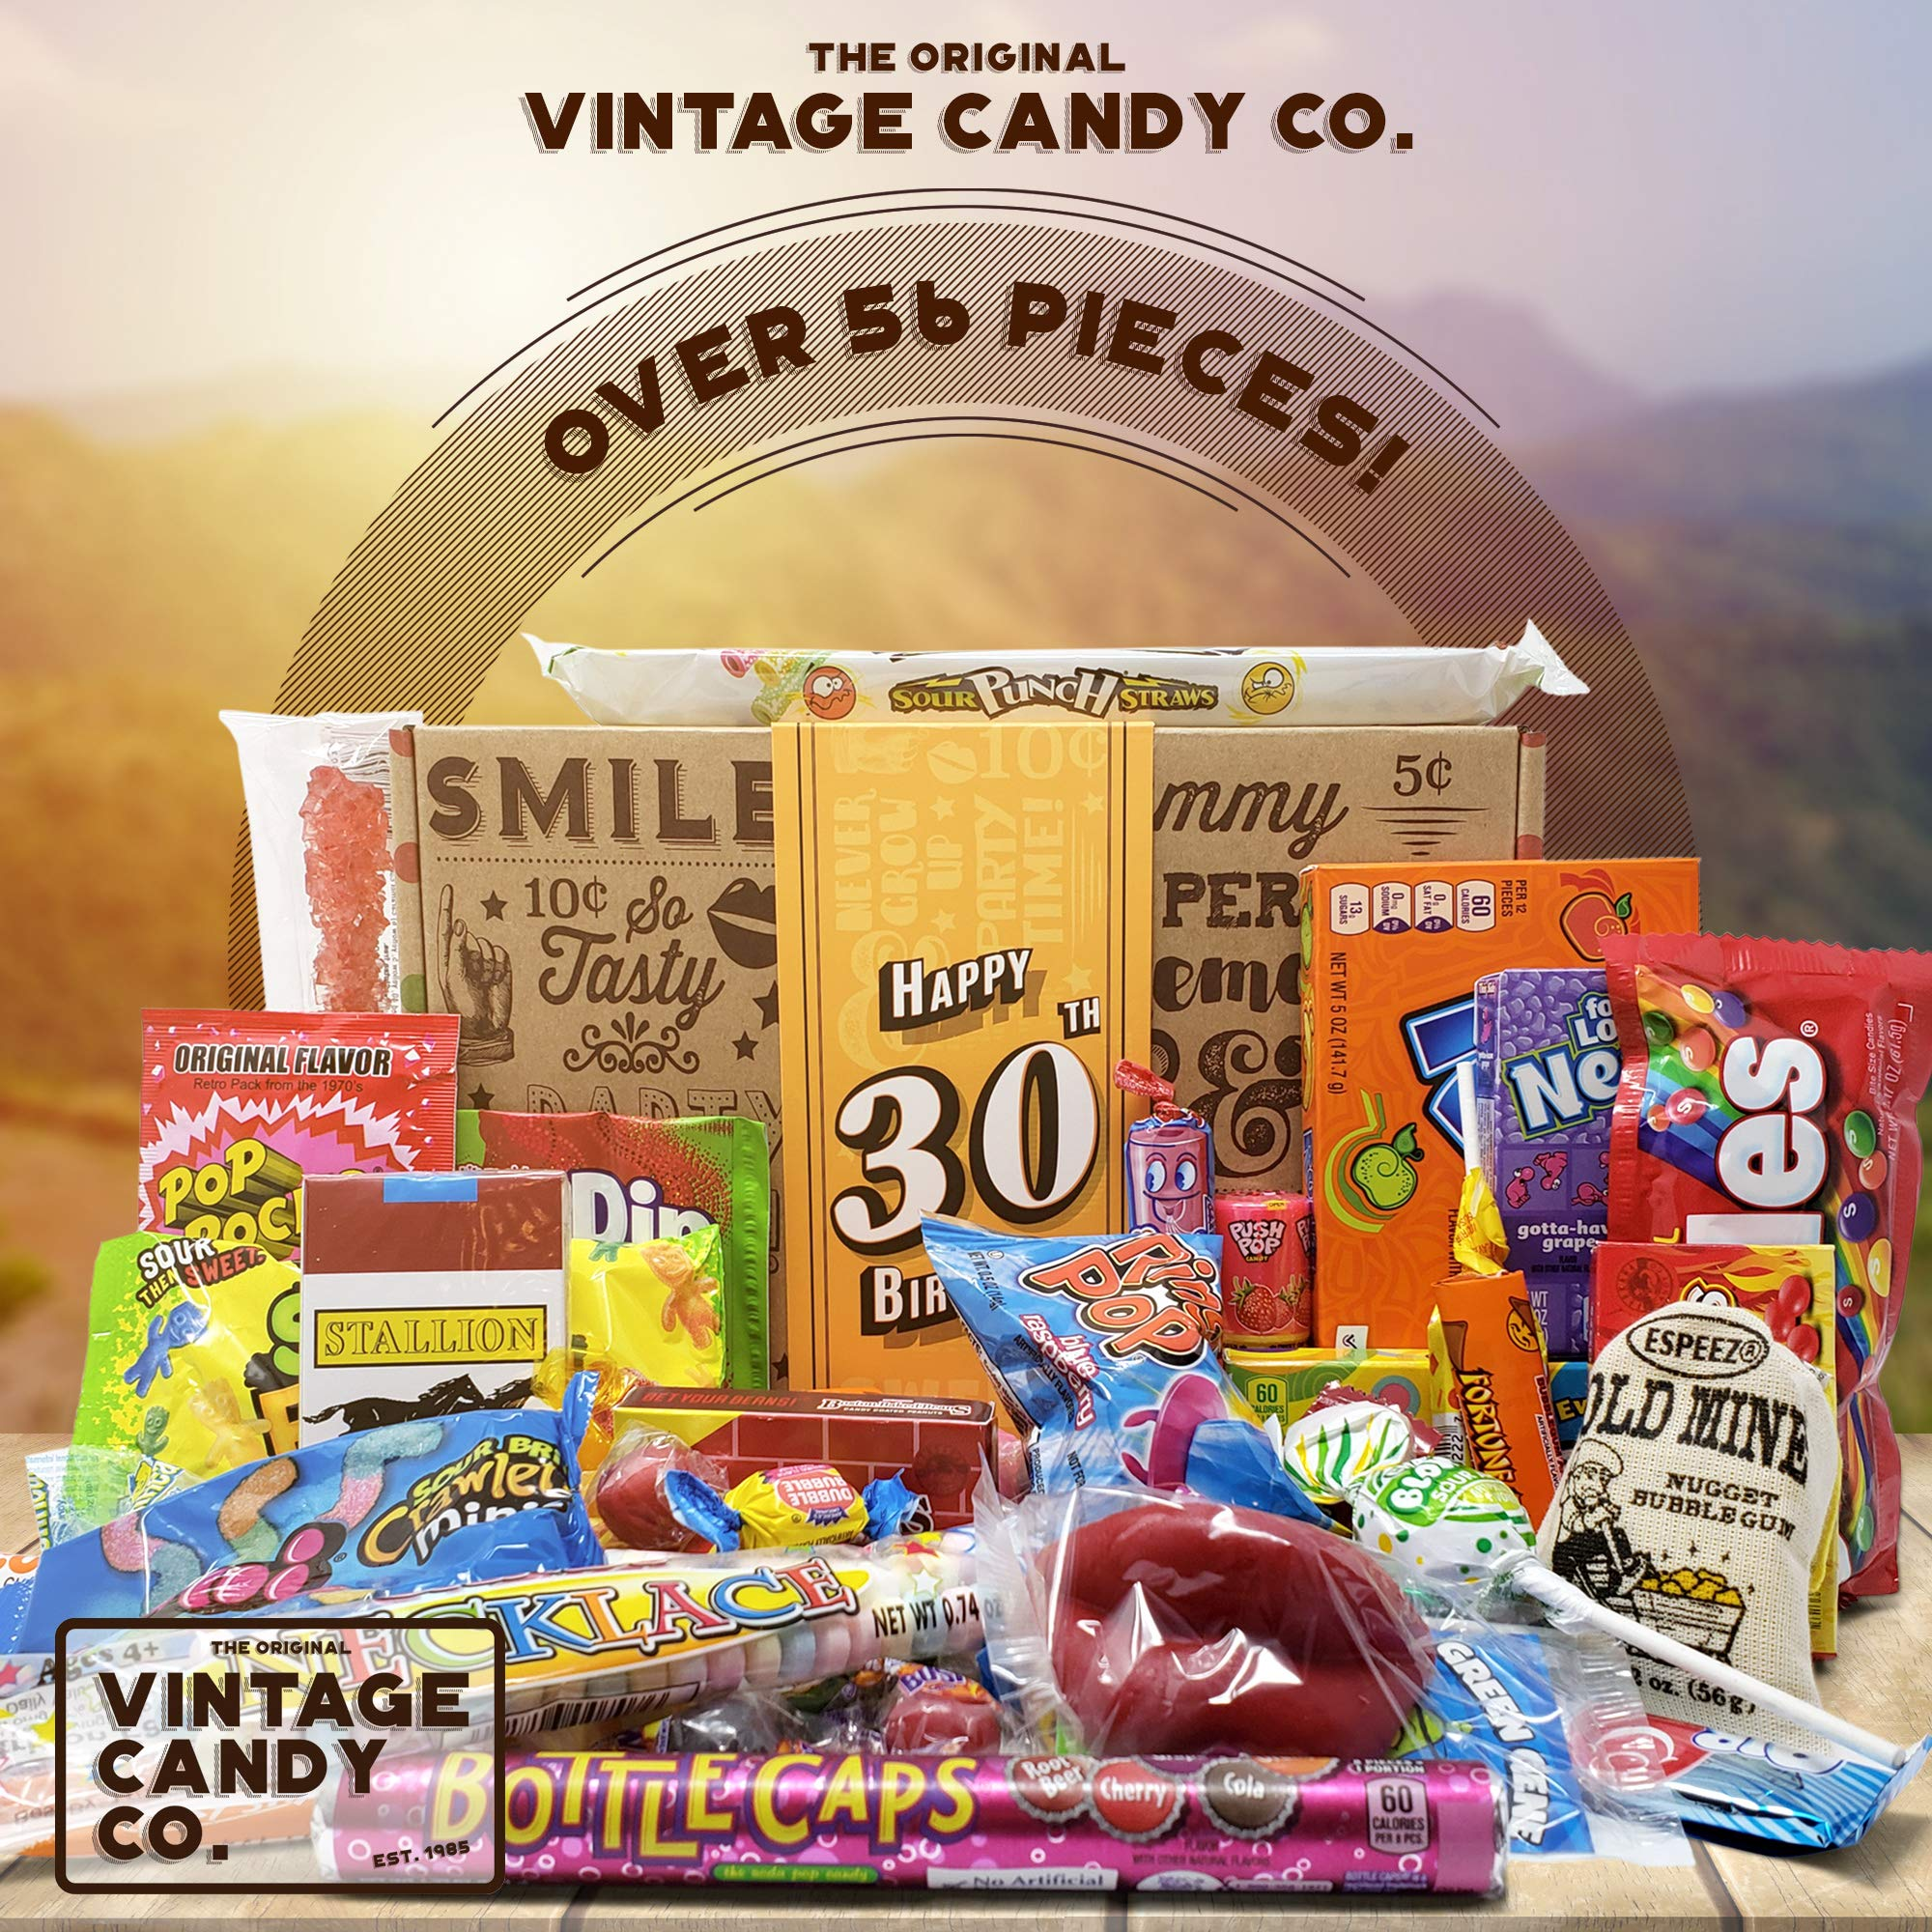 VINTAGE CANDY CO. 30TH BIRTHDAY RETRO CANDY GIFT BOX - 1989 Decade Childhood Nostalgic Candies - Fun Funny Gag Gift Basket - Milestone THIRTIETH Birthday - PERFECT For Man Or Woman Turning THIRTY by Vintage Candy Co. (Image #2)